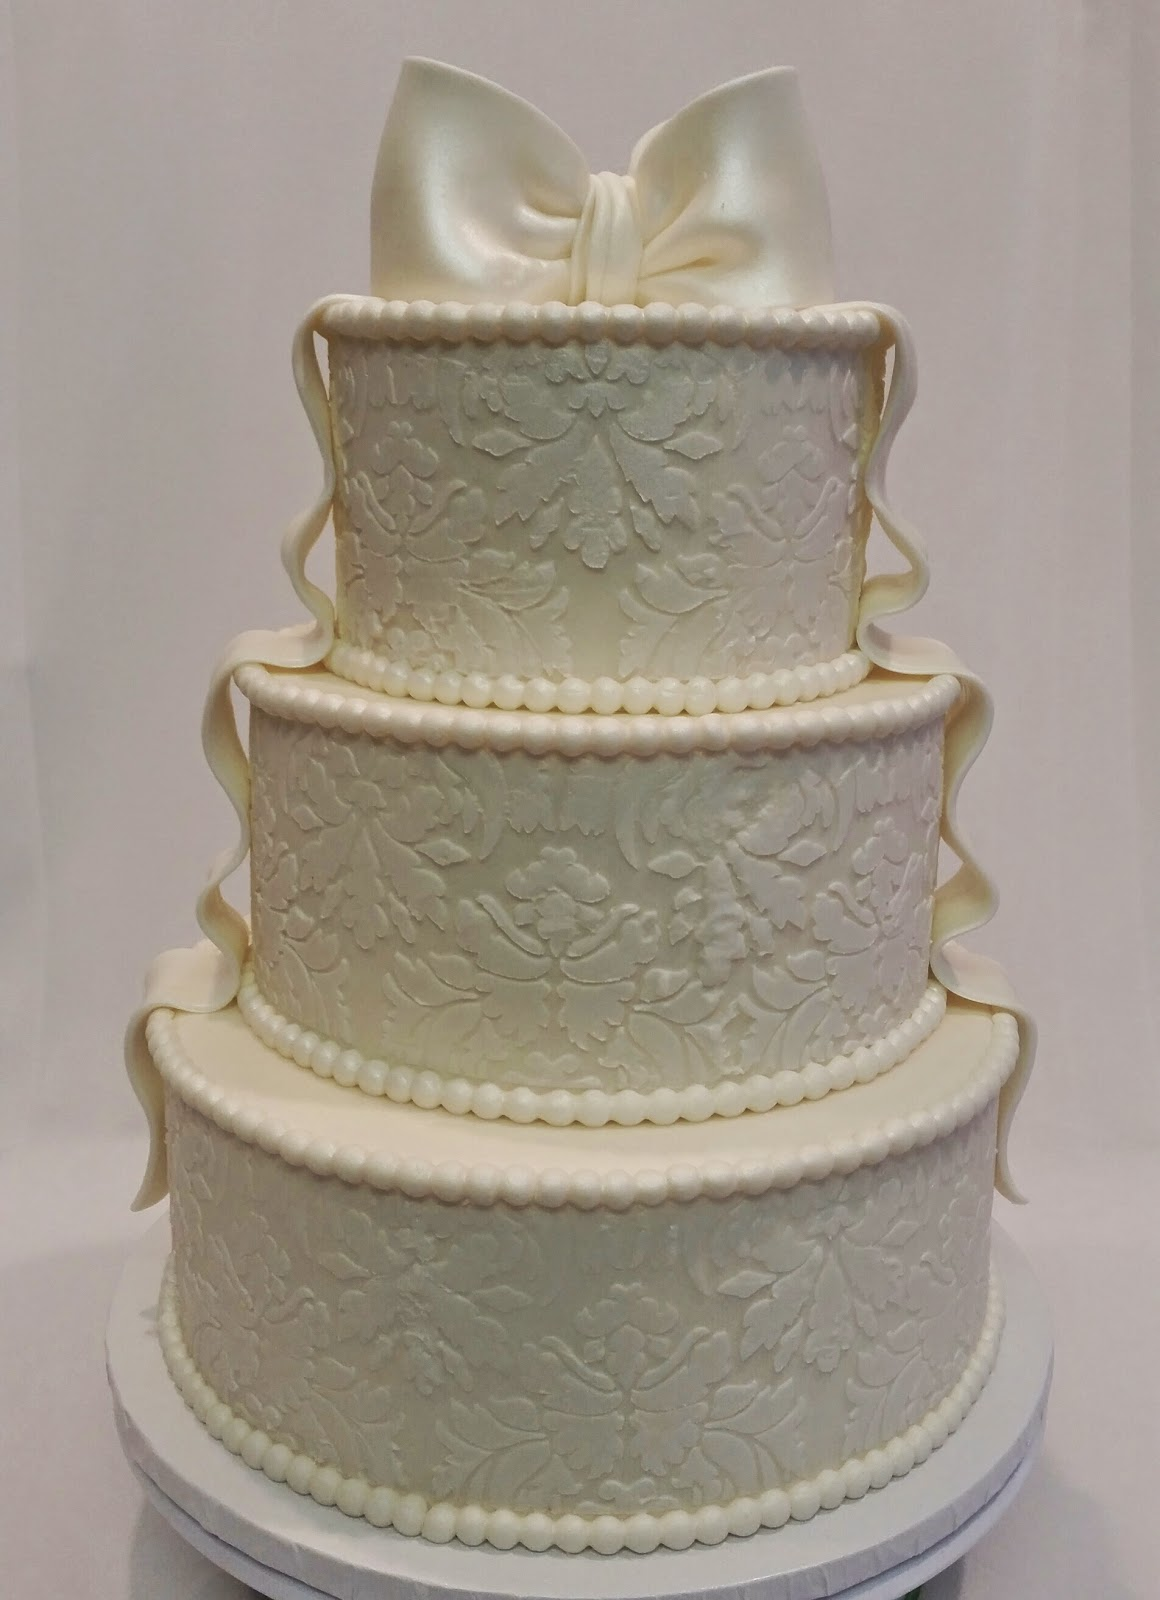 MyMoniCakes 3 Tiered Ivory Stencil Wedding Cake